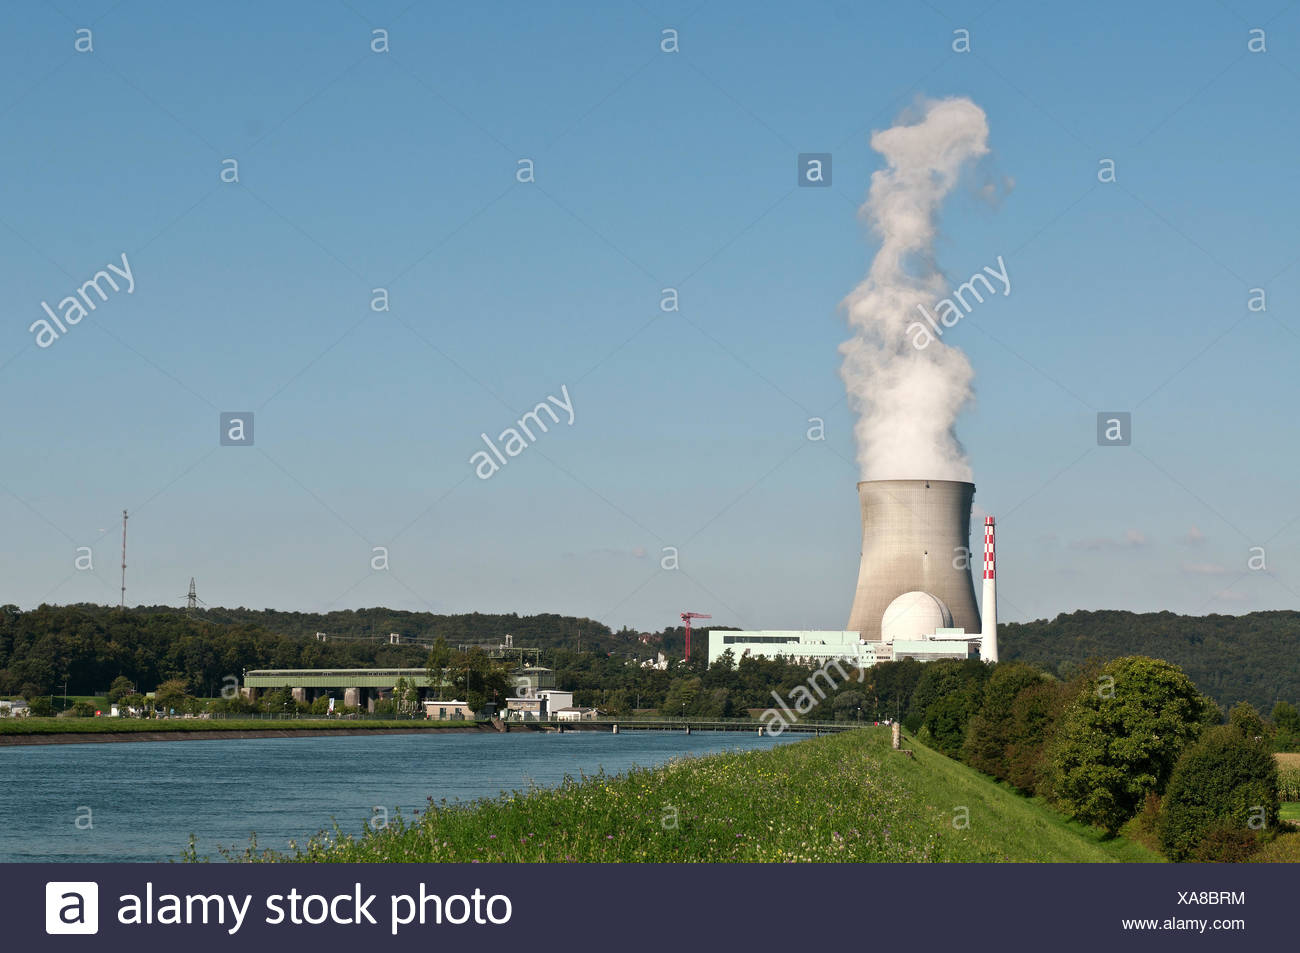 nuclear power plant leibstadt Stock Photo